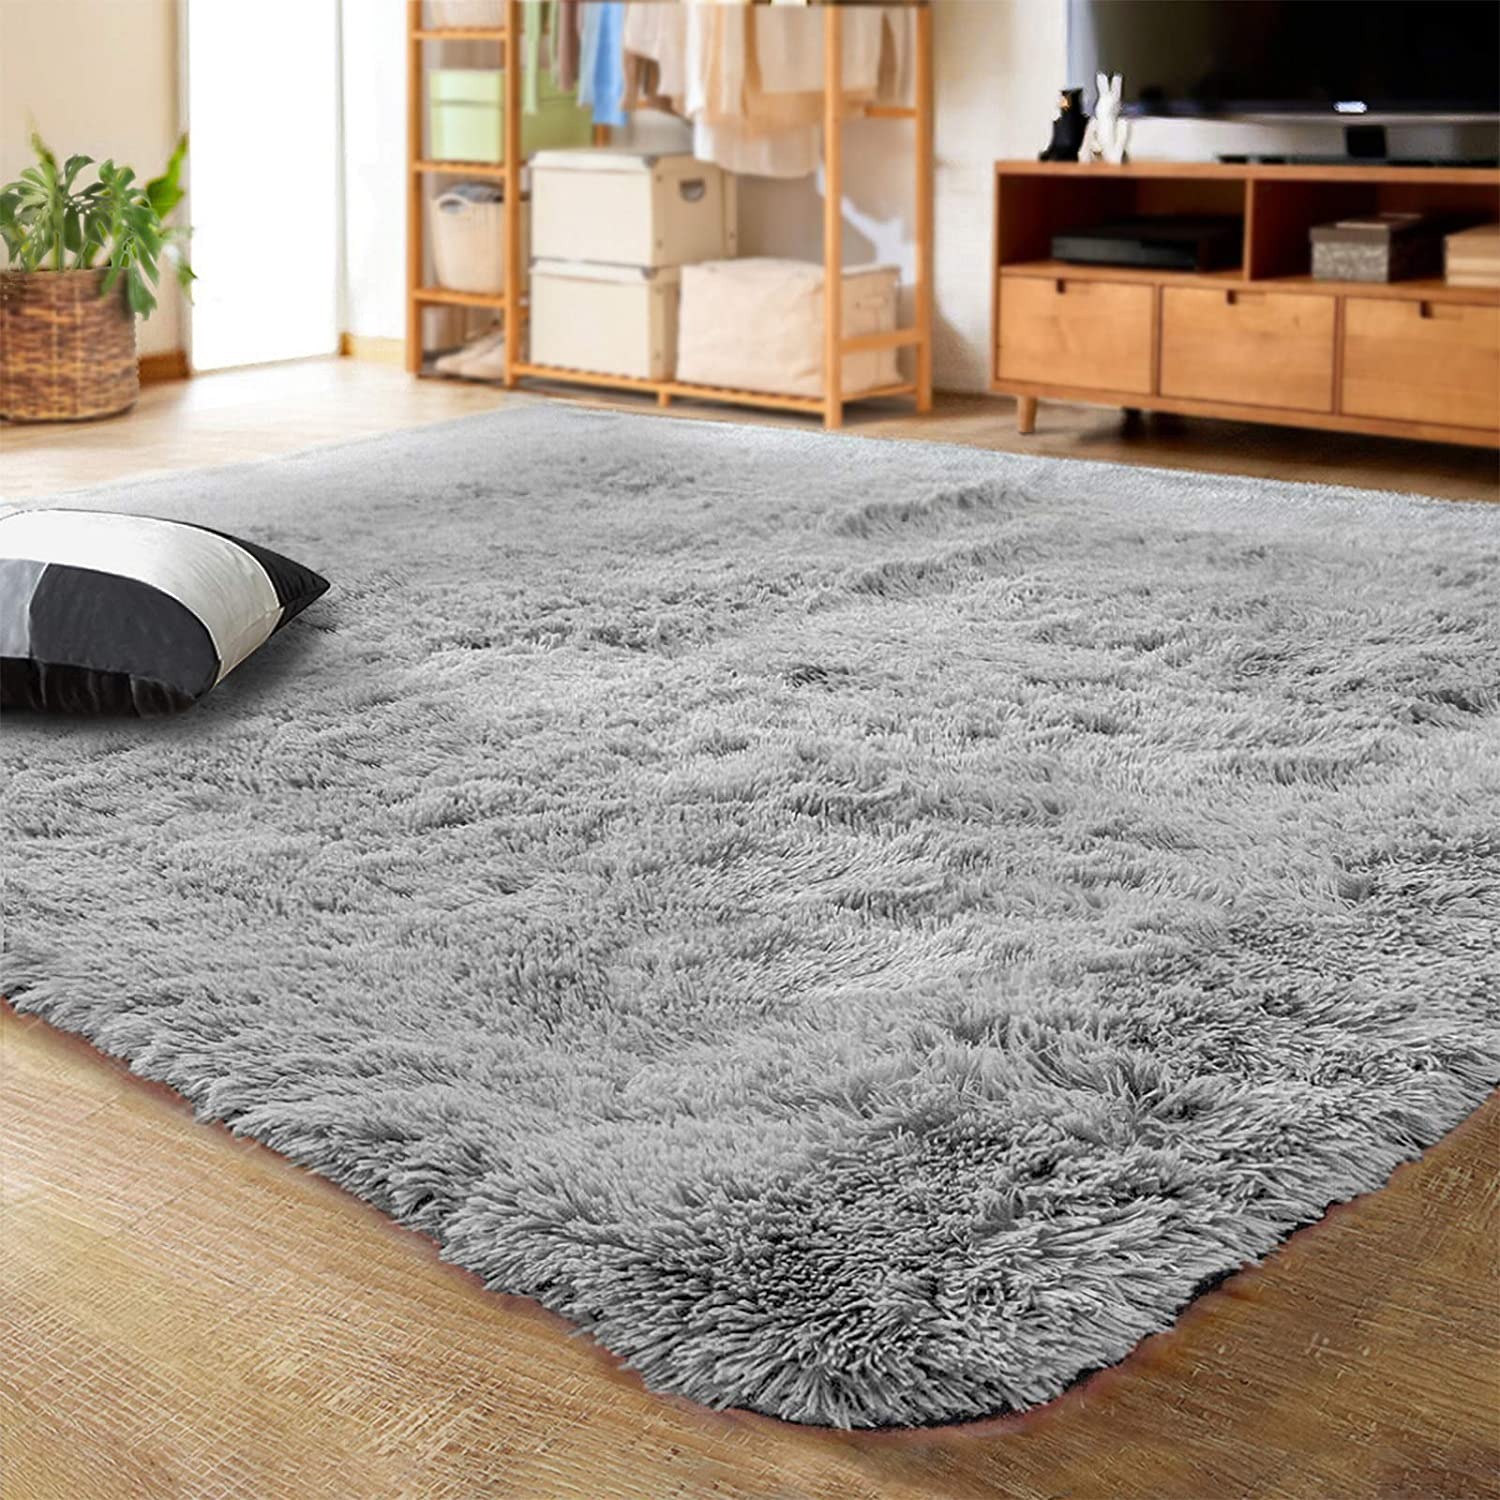 LOCHAS Ultra Large-scale sale Soft Max 50% OFF Indoor Modern Area Rugs Room Fluffy Car Living